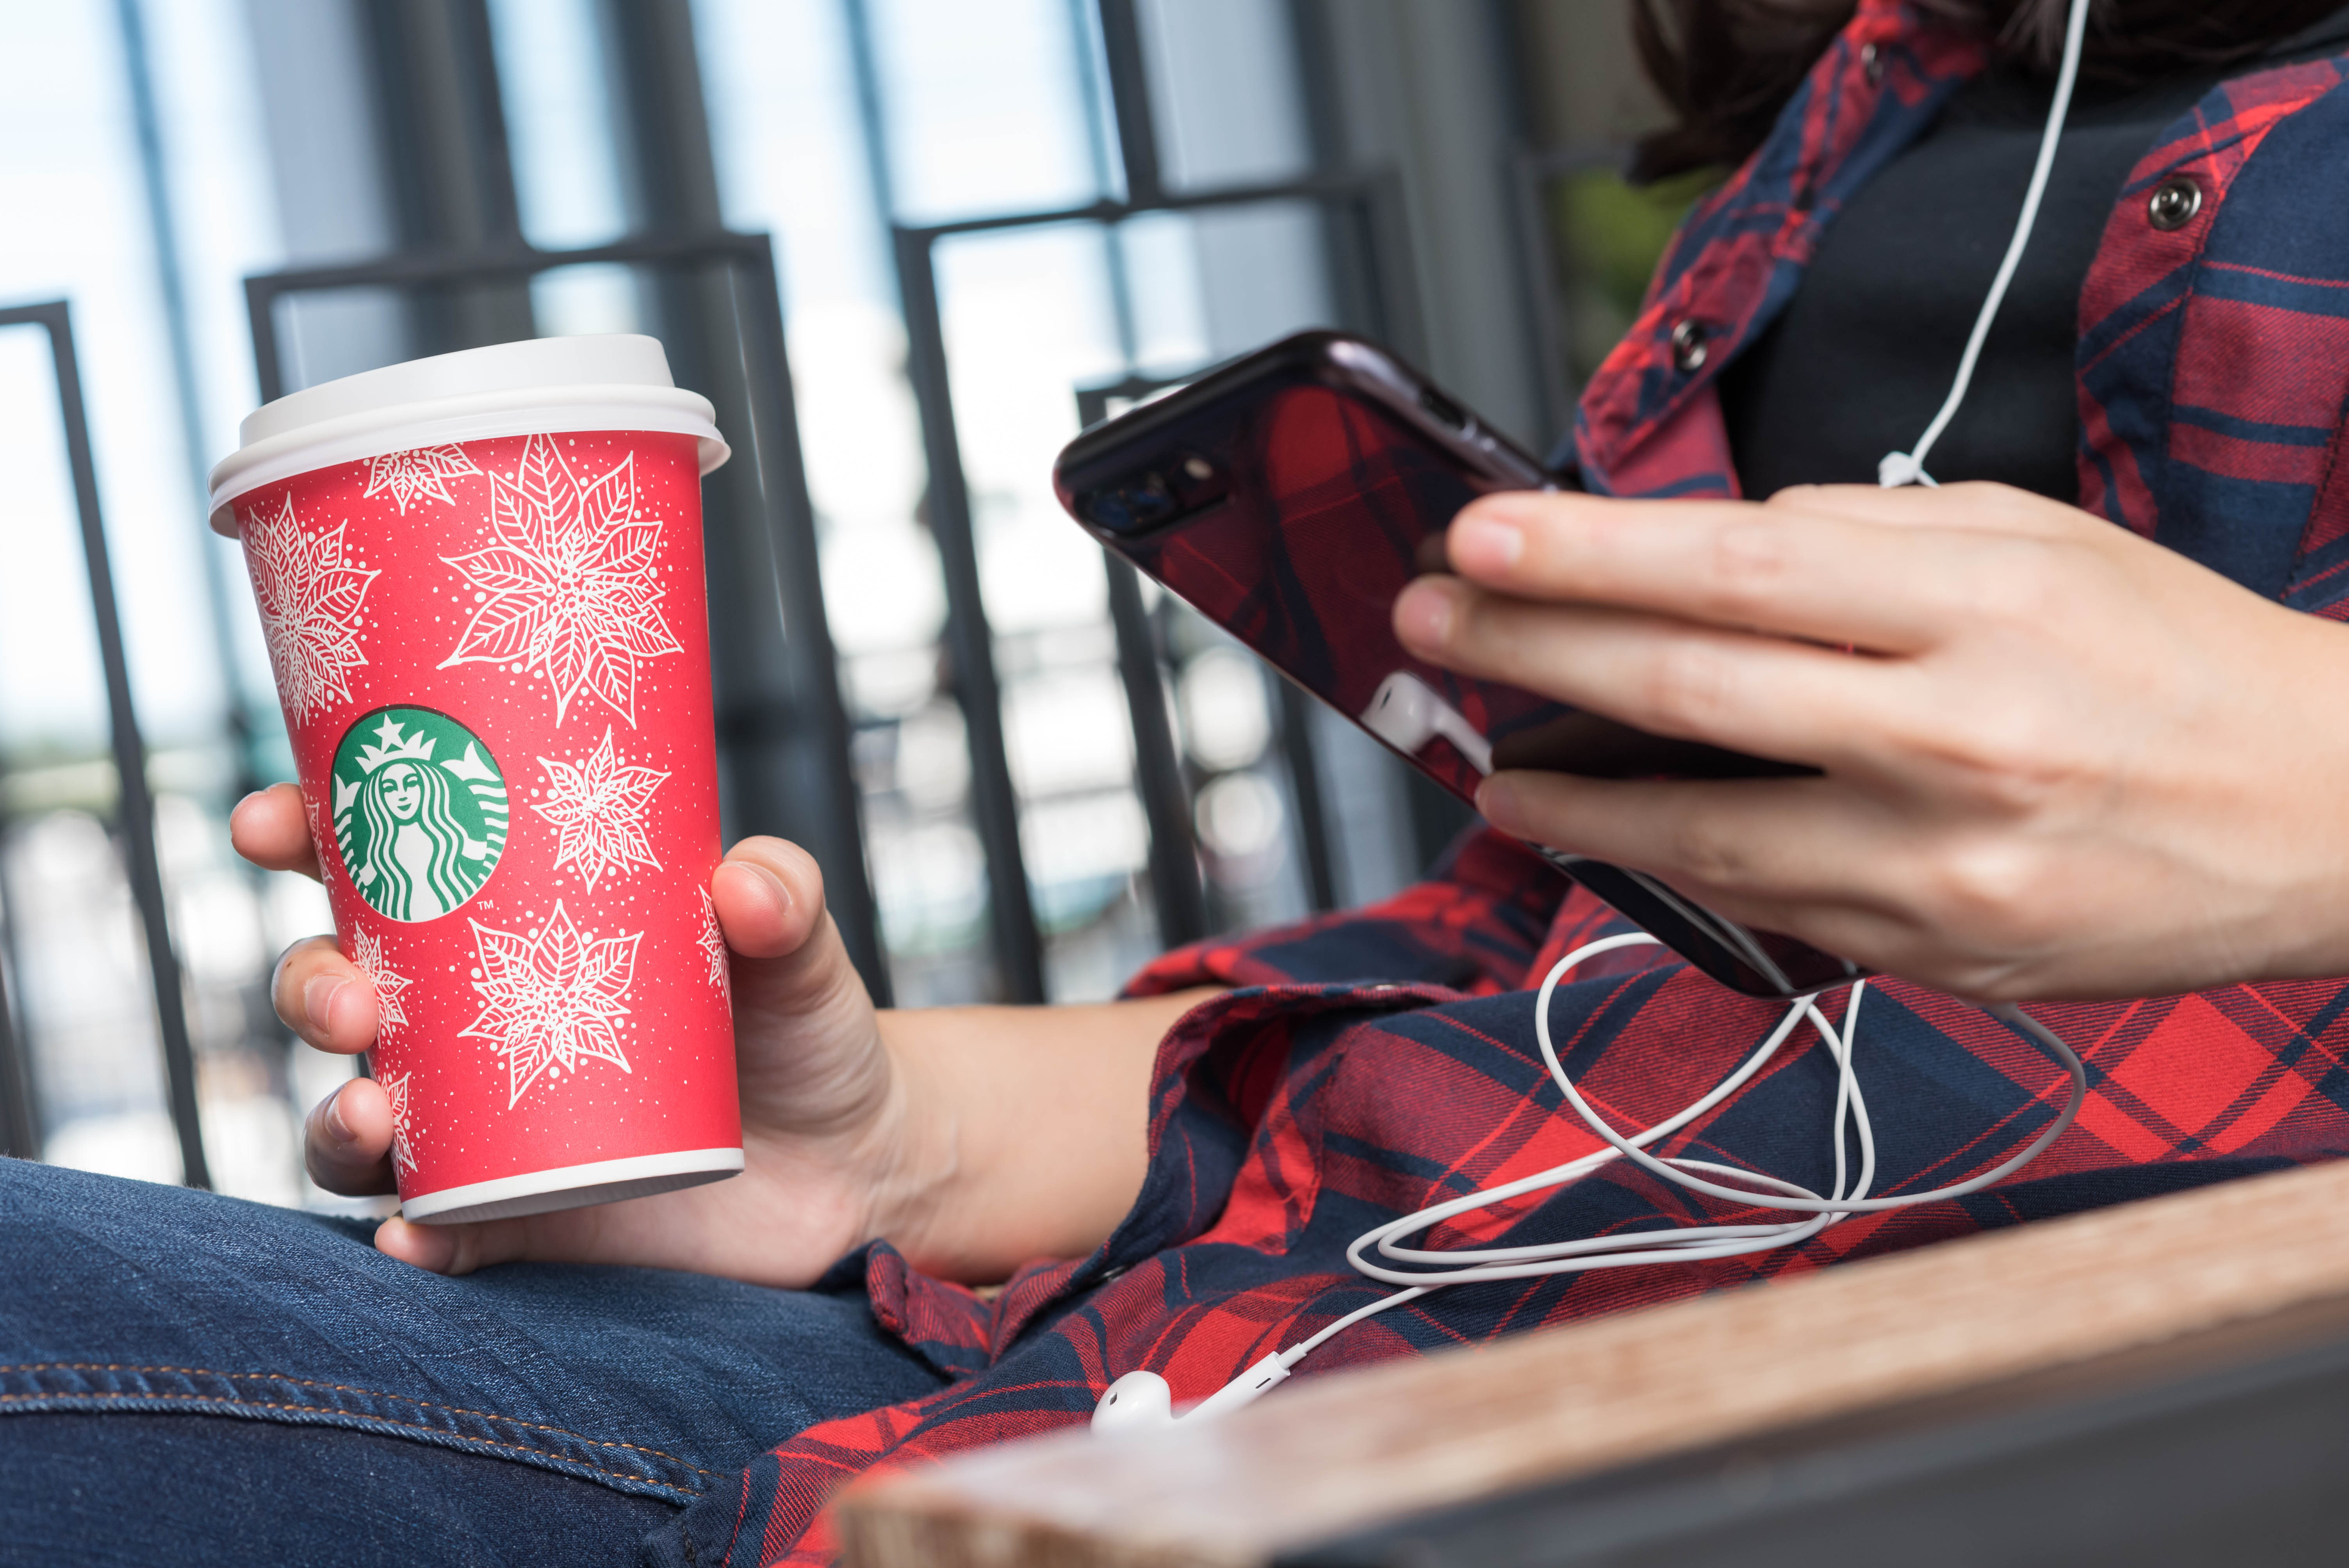 Starbucks For Life Is Back, As If I Needed An Excuse To Keep Going Back